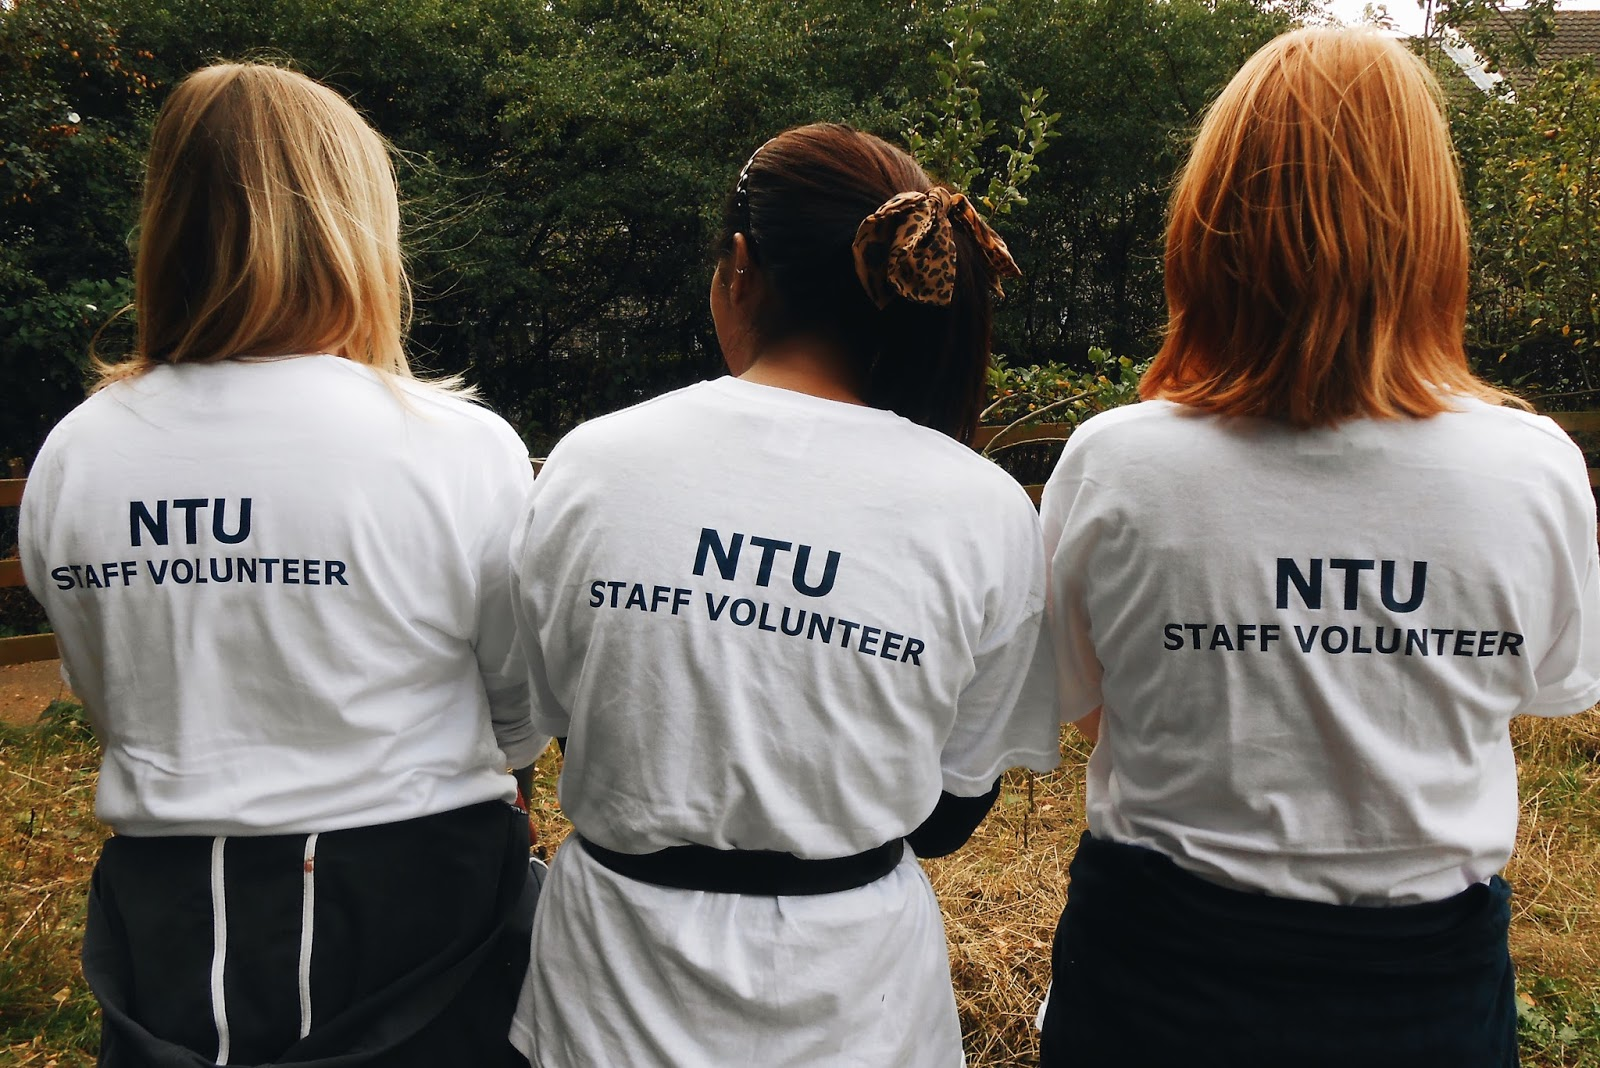 Some of NTU's Staff Volunteers.